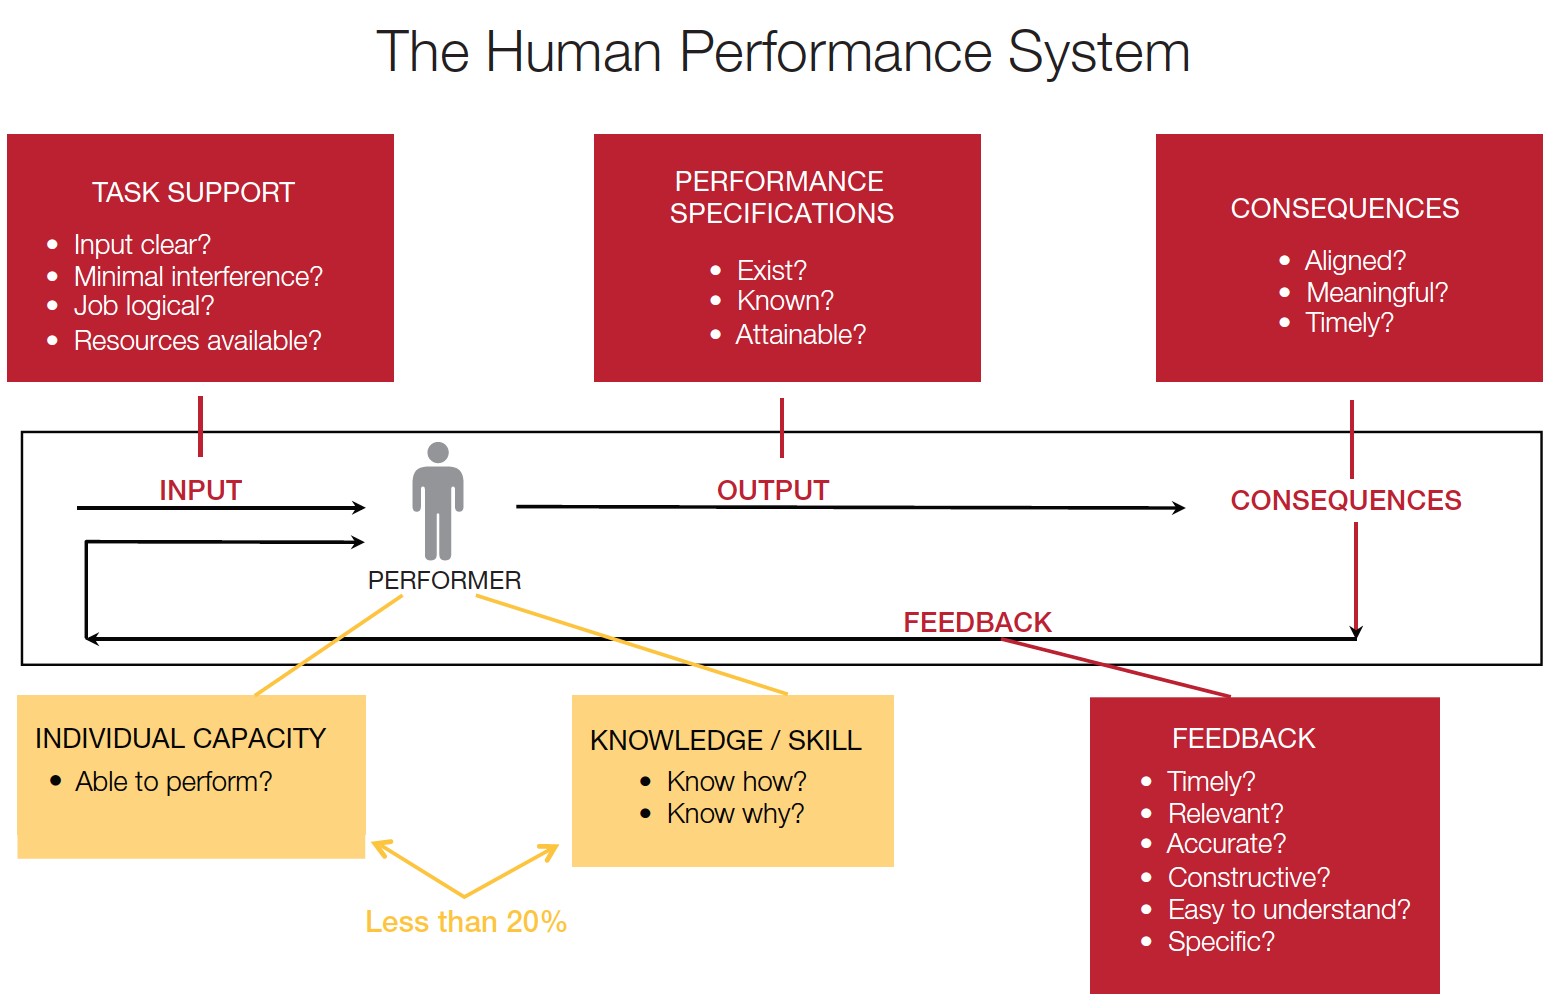 Human Performance System